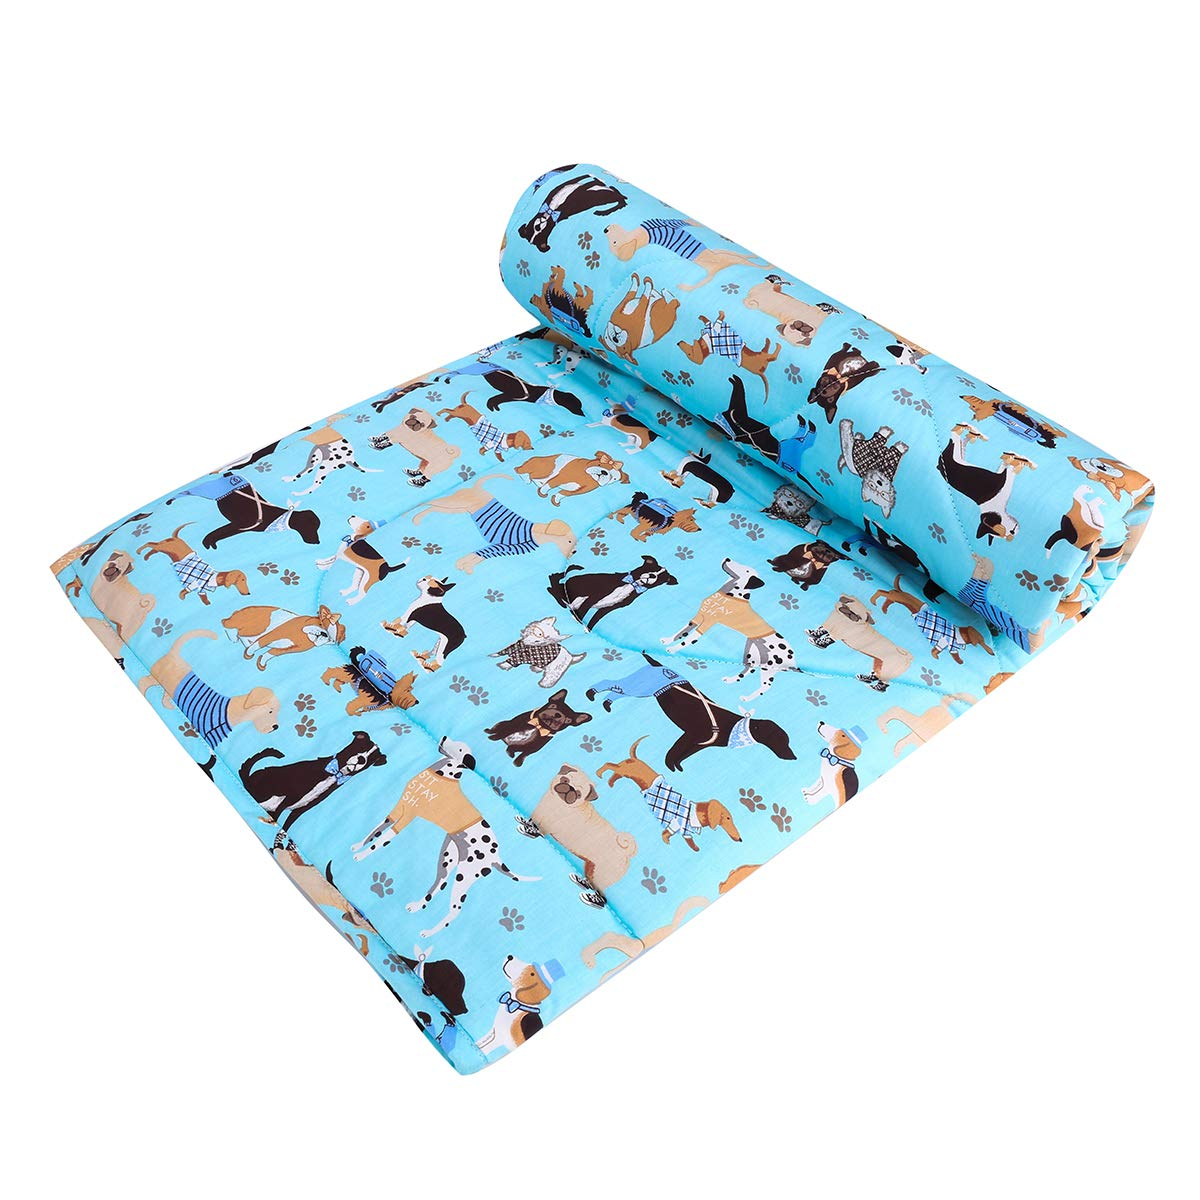 """UOMNY Baby Blanket - Soft Cot Comforter Crib Baby Quilts for Boys and Girls 1 Pack Cotton Baby Blanket Cradle Quilt Nursery Bed Throw Blanket Bed Cover 33"""" X 42"""" Lightweight Blanket (Dog Pattern)"""